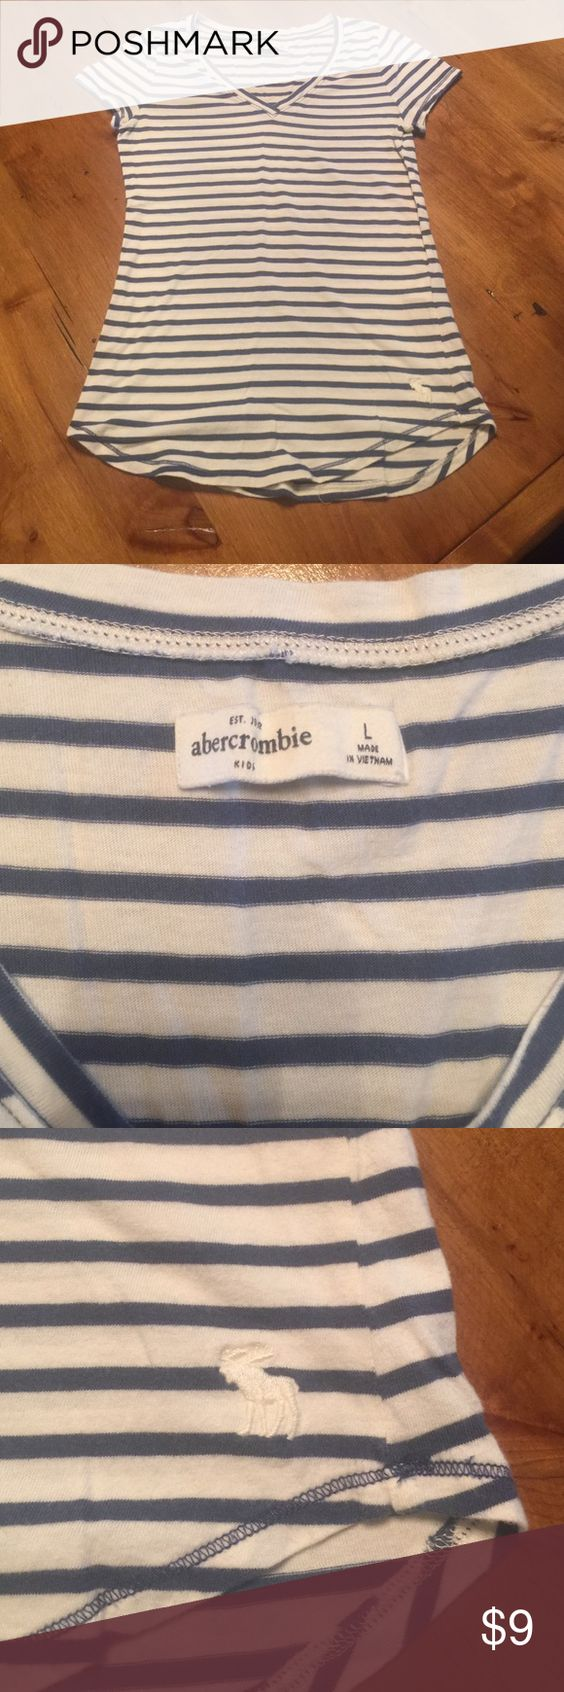 Abercrombie soft short sleeve T-shirt Abercrombie soft navy blue and white striped T-shirt worn once Abercrombie & Fitch Shirts & Tops Tees - Short Sleeve